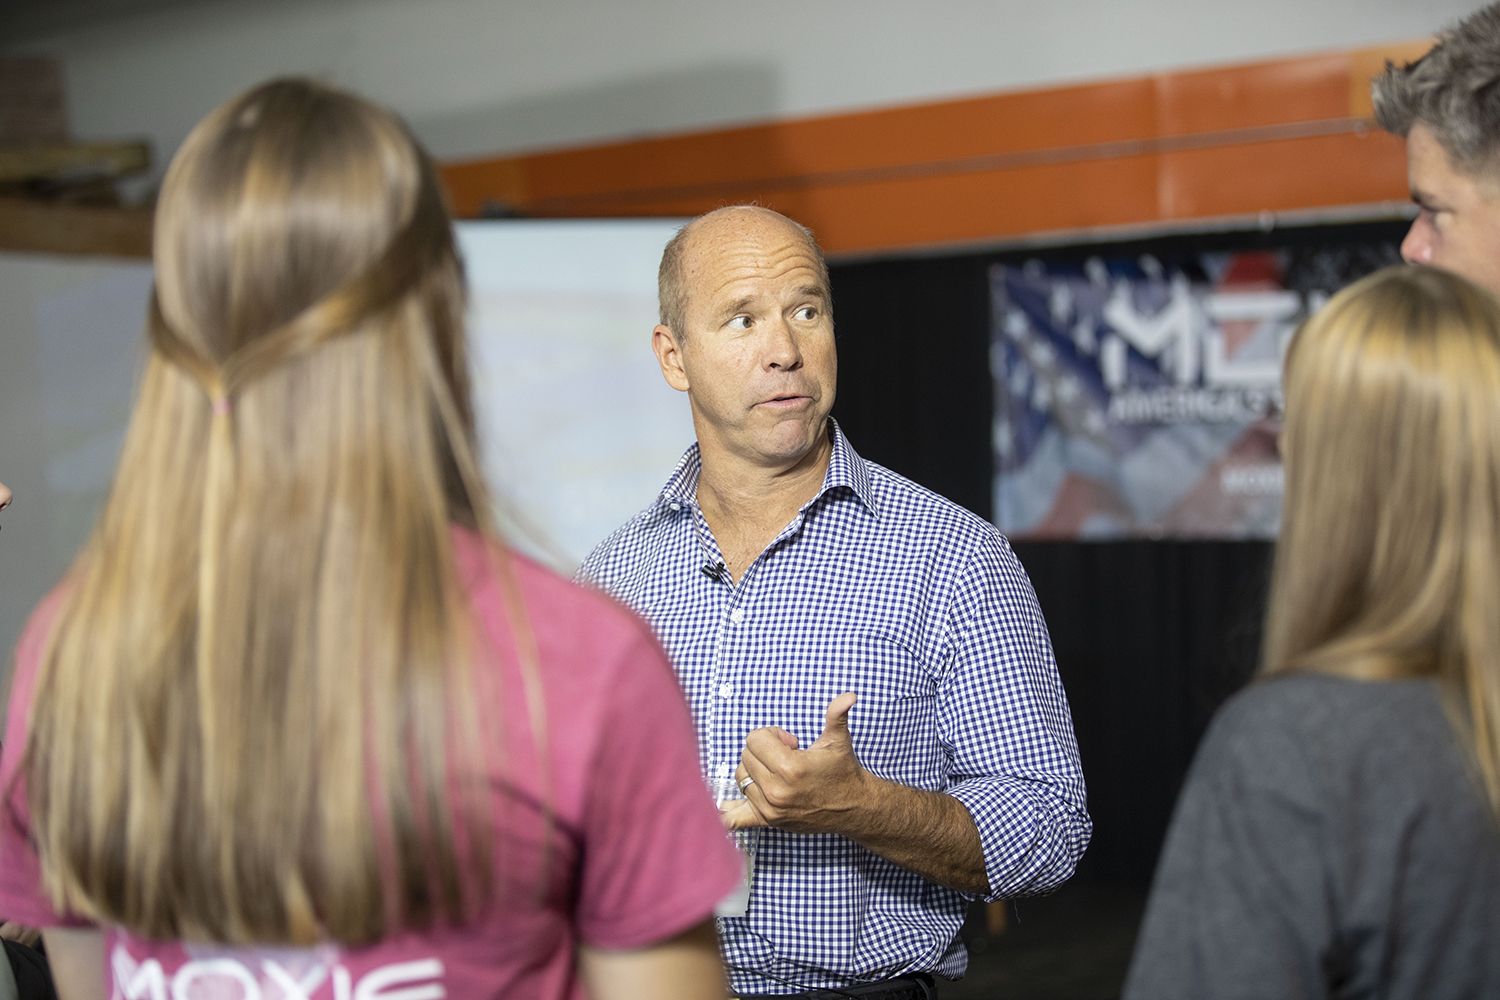 2020 Democratic Candidate and former Maryland Congressman John Delaney speaks to business owner Jason Hall and his family at Moxie Solar in North Liberty, IA, on Friday, Oct. 18, 2019. The visit was part of John Delaney's Heartland Startup Tour.